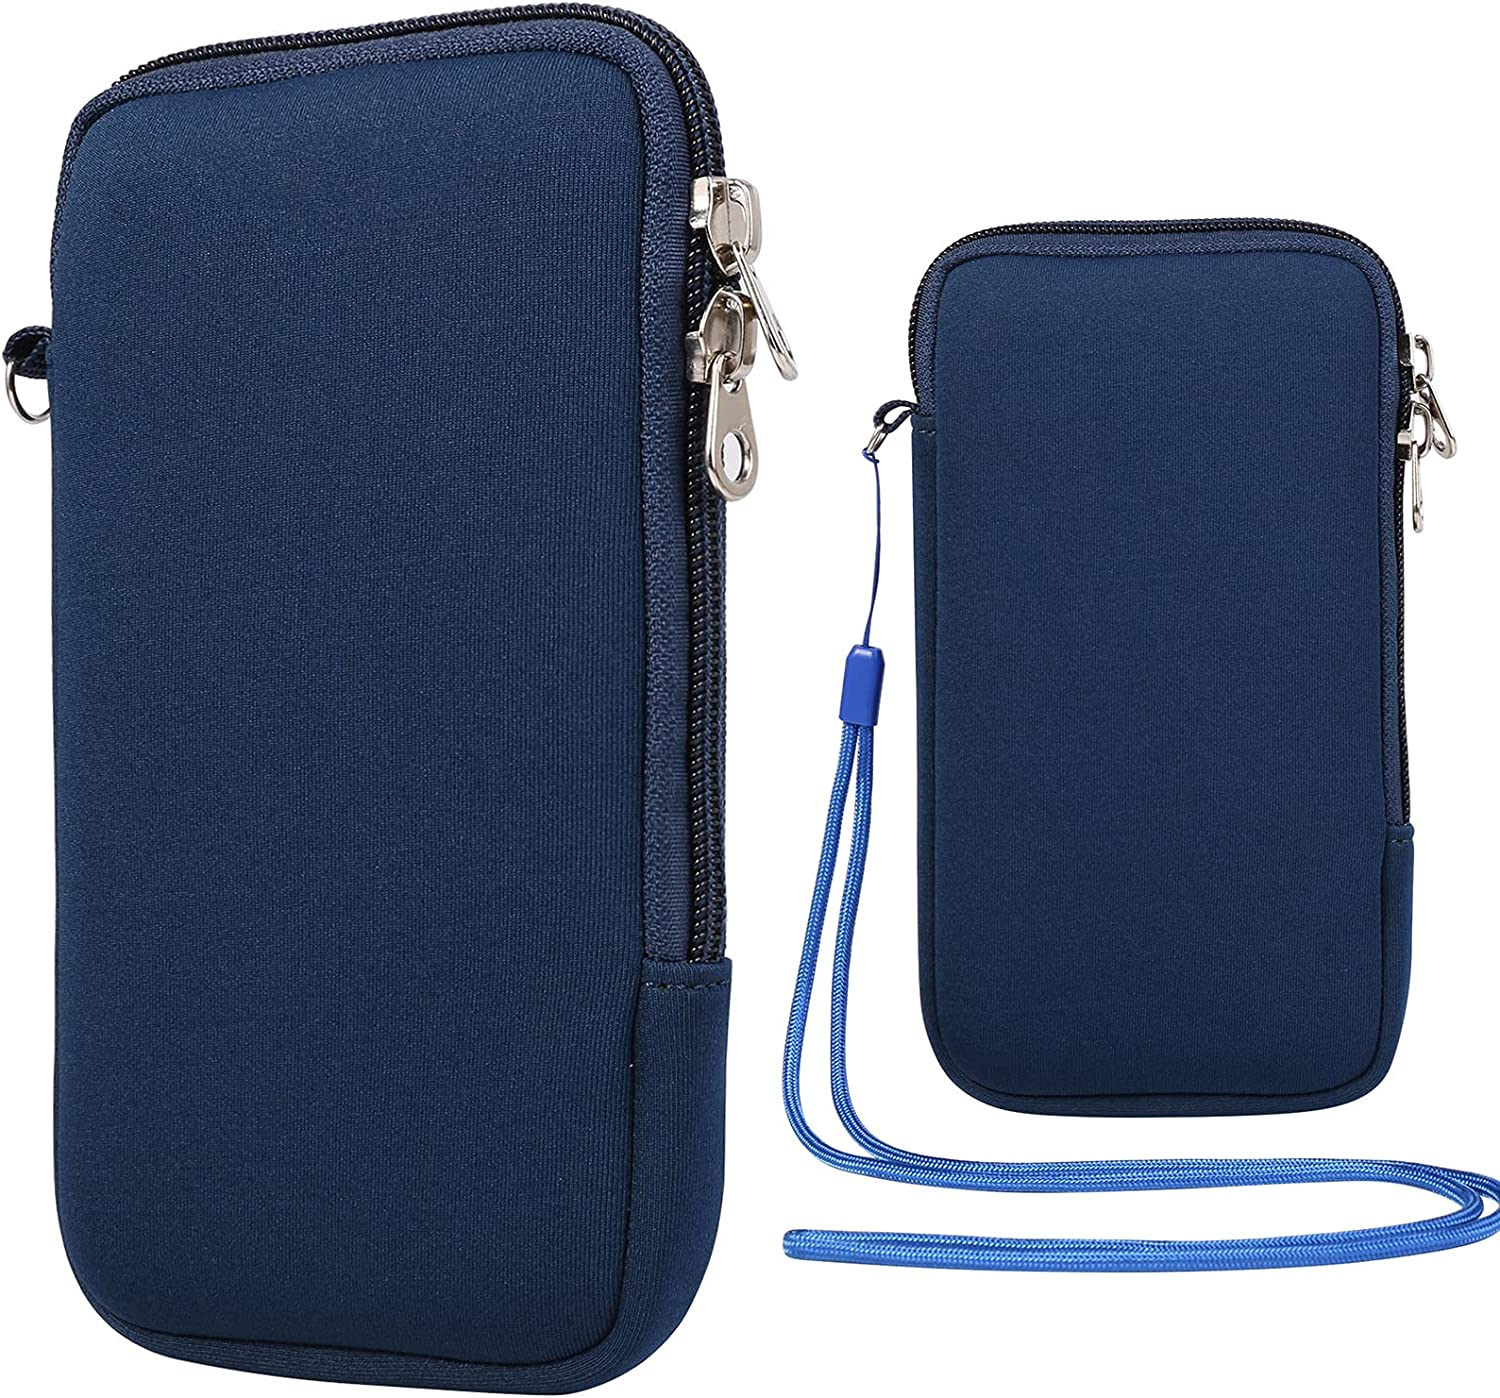 Neoprene Phone Protective Sleeve Pouch w/Neck Lanyard Compatible for Galaxy Note 20 S21+ S20 FE S10 Plus A52 A51 A11 A31, iPhone 12 11 Pro Max, Moto E G Stylus G Fast, LG Stylo 5 (Blue, L)